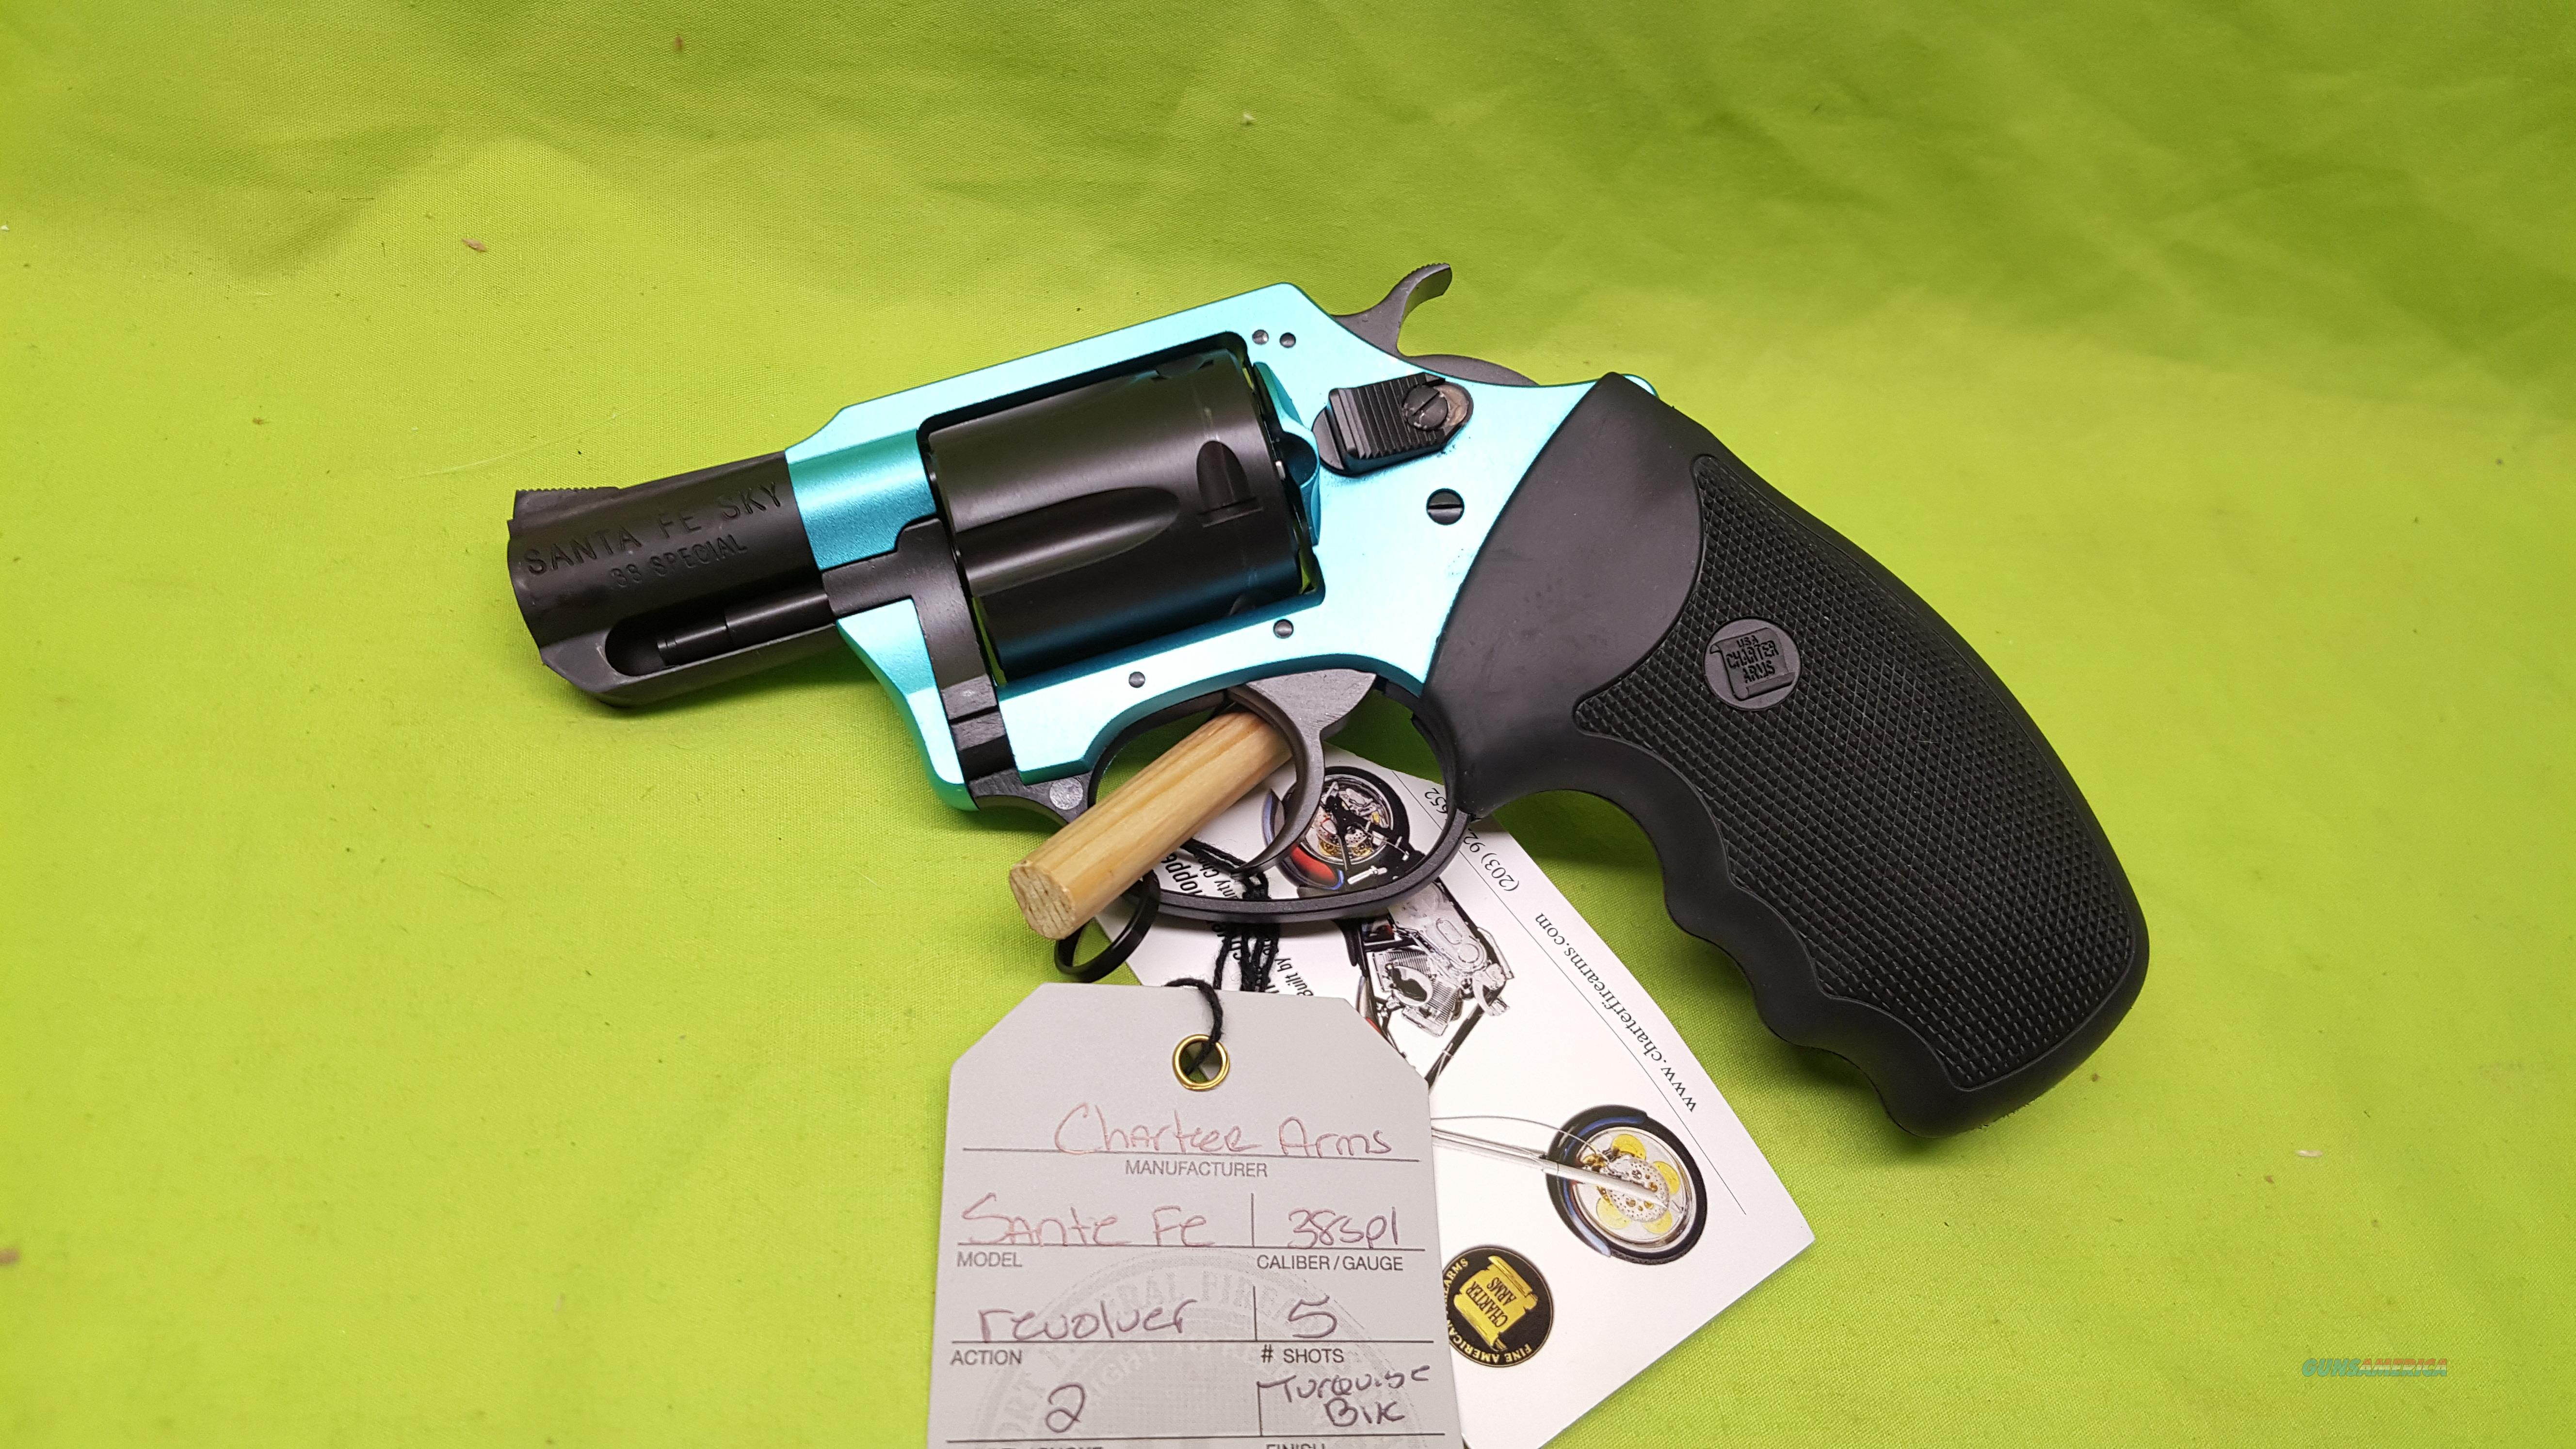 CHARTER UNDERCOVER SANTA FE SKY 38 SPL TURQUOISE  Guns > Pistols > Charter Arms Revolvers